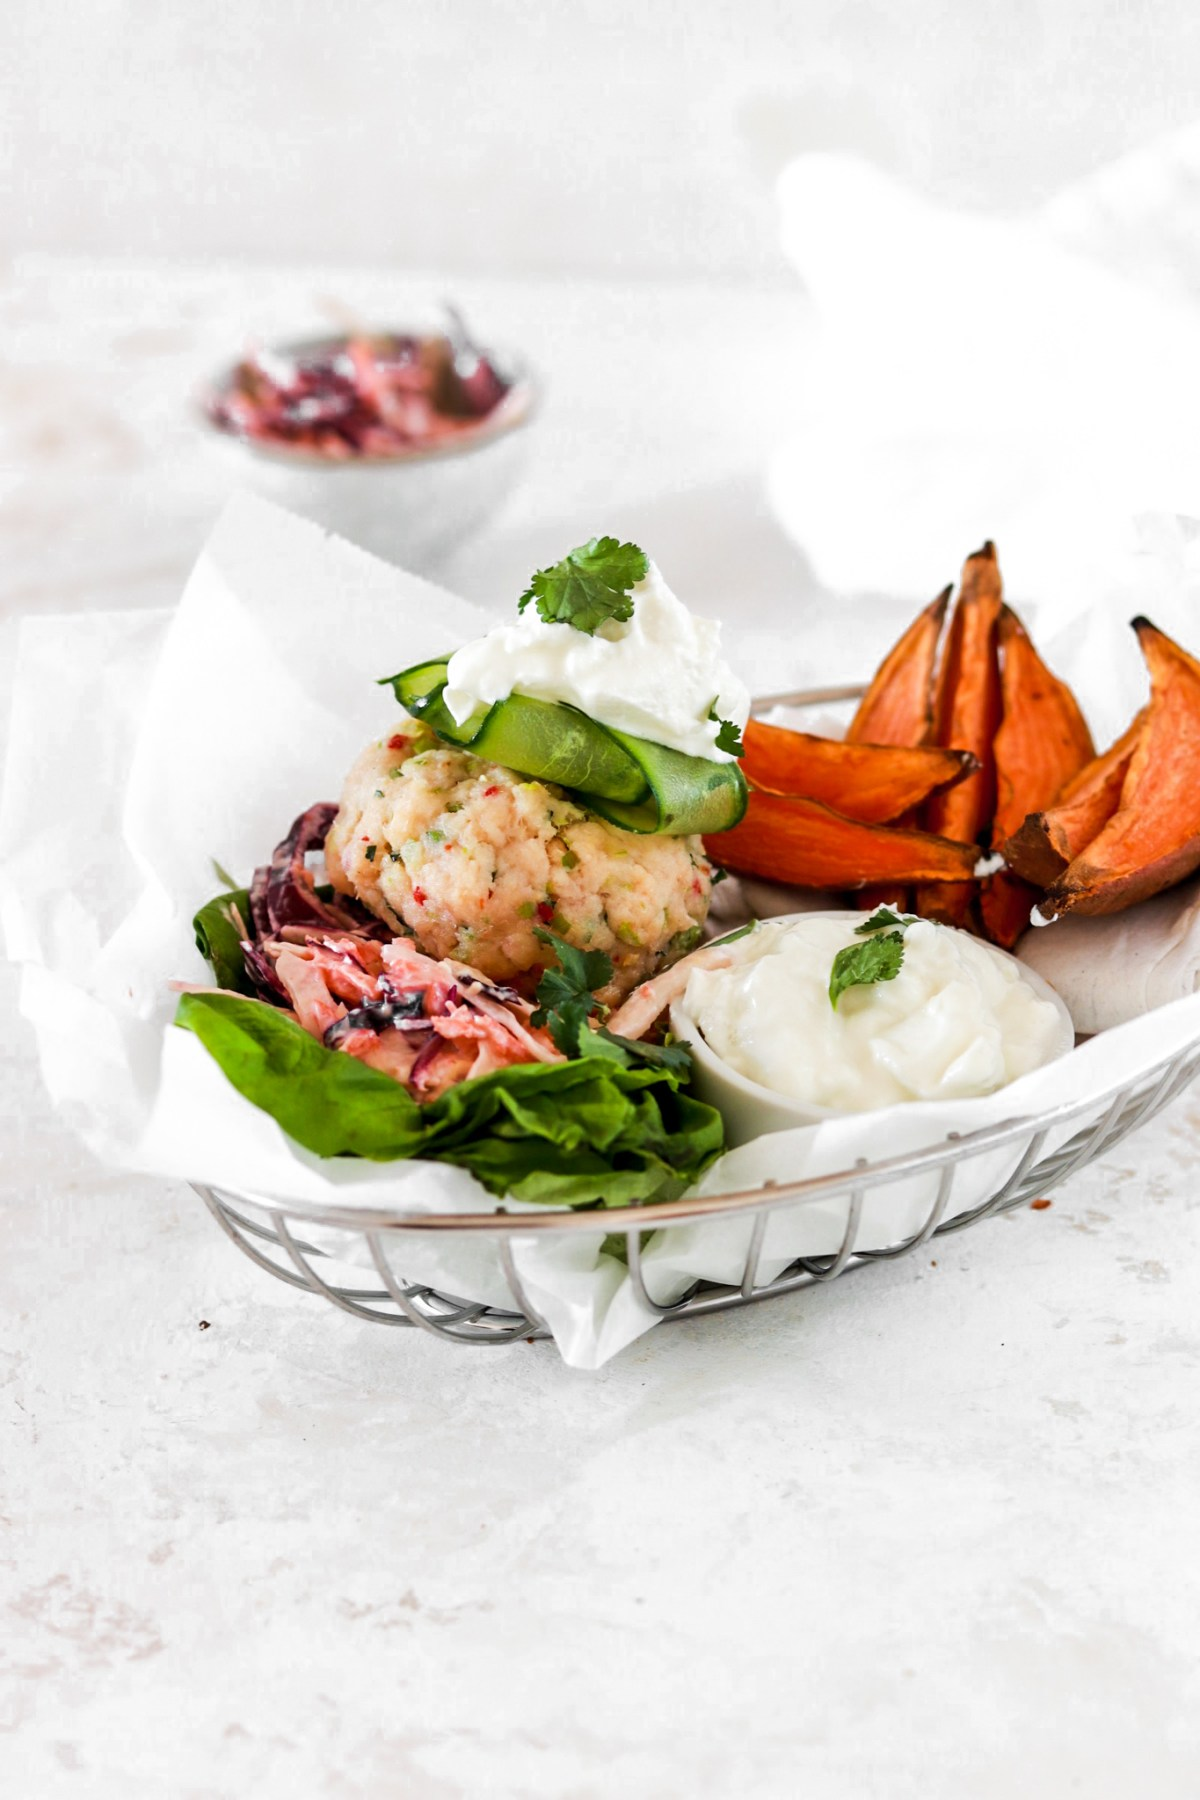 Asian Inspired Fish Burger (Gluten & Grain Free) From Front